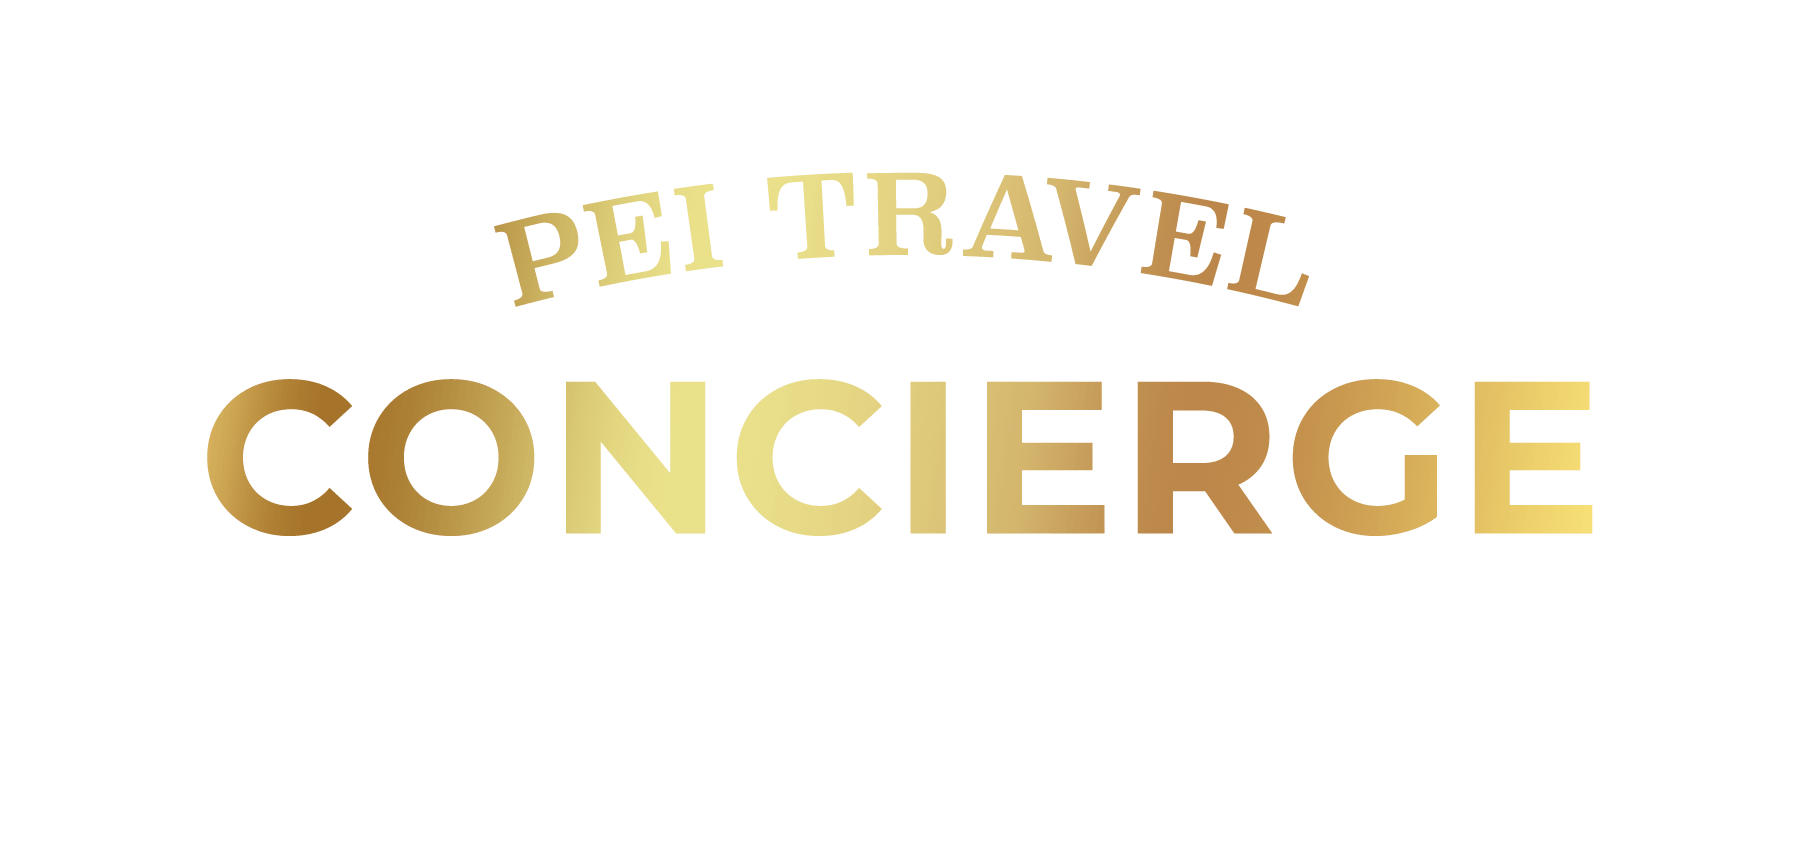 PEI Travel Concierge Services